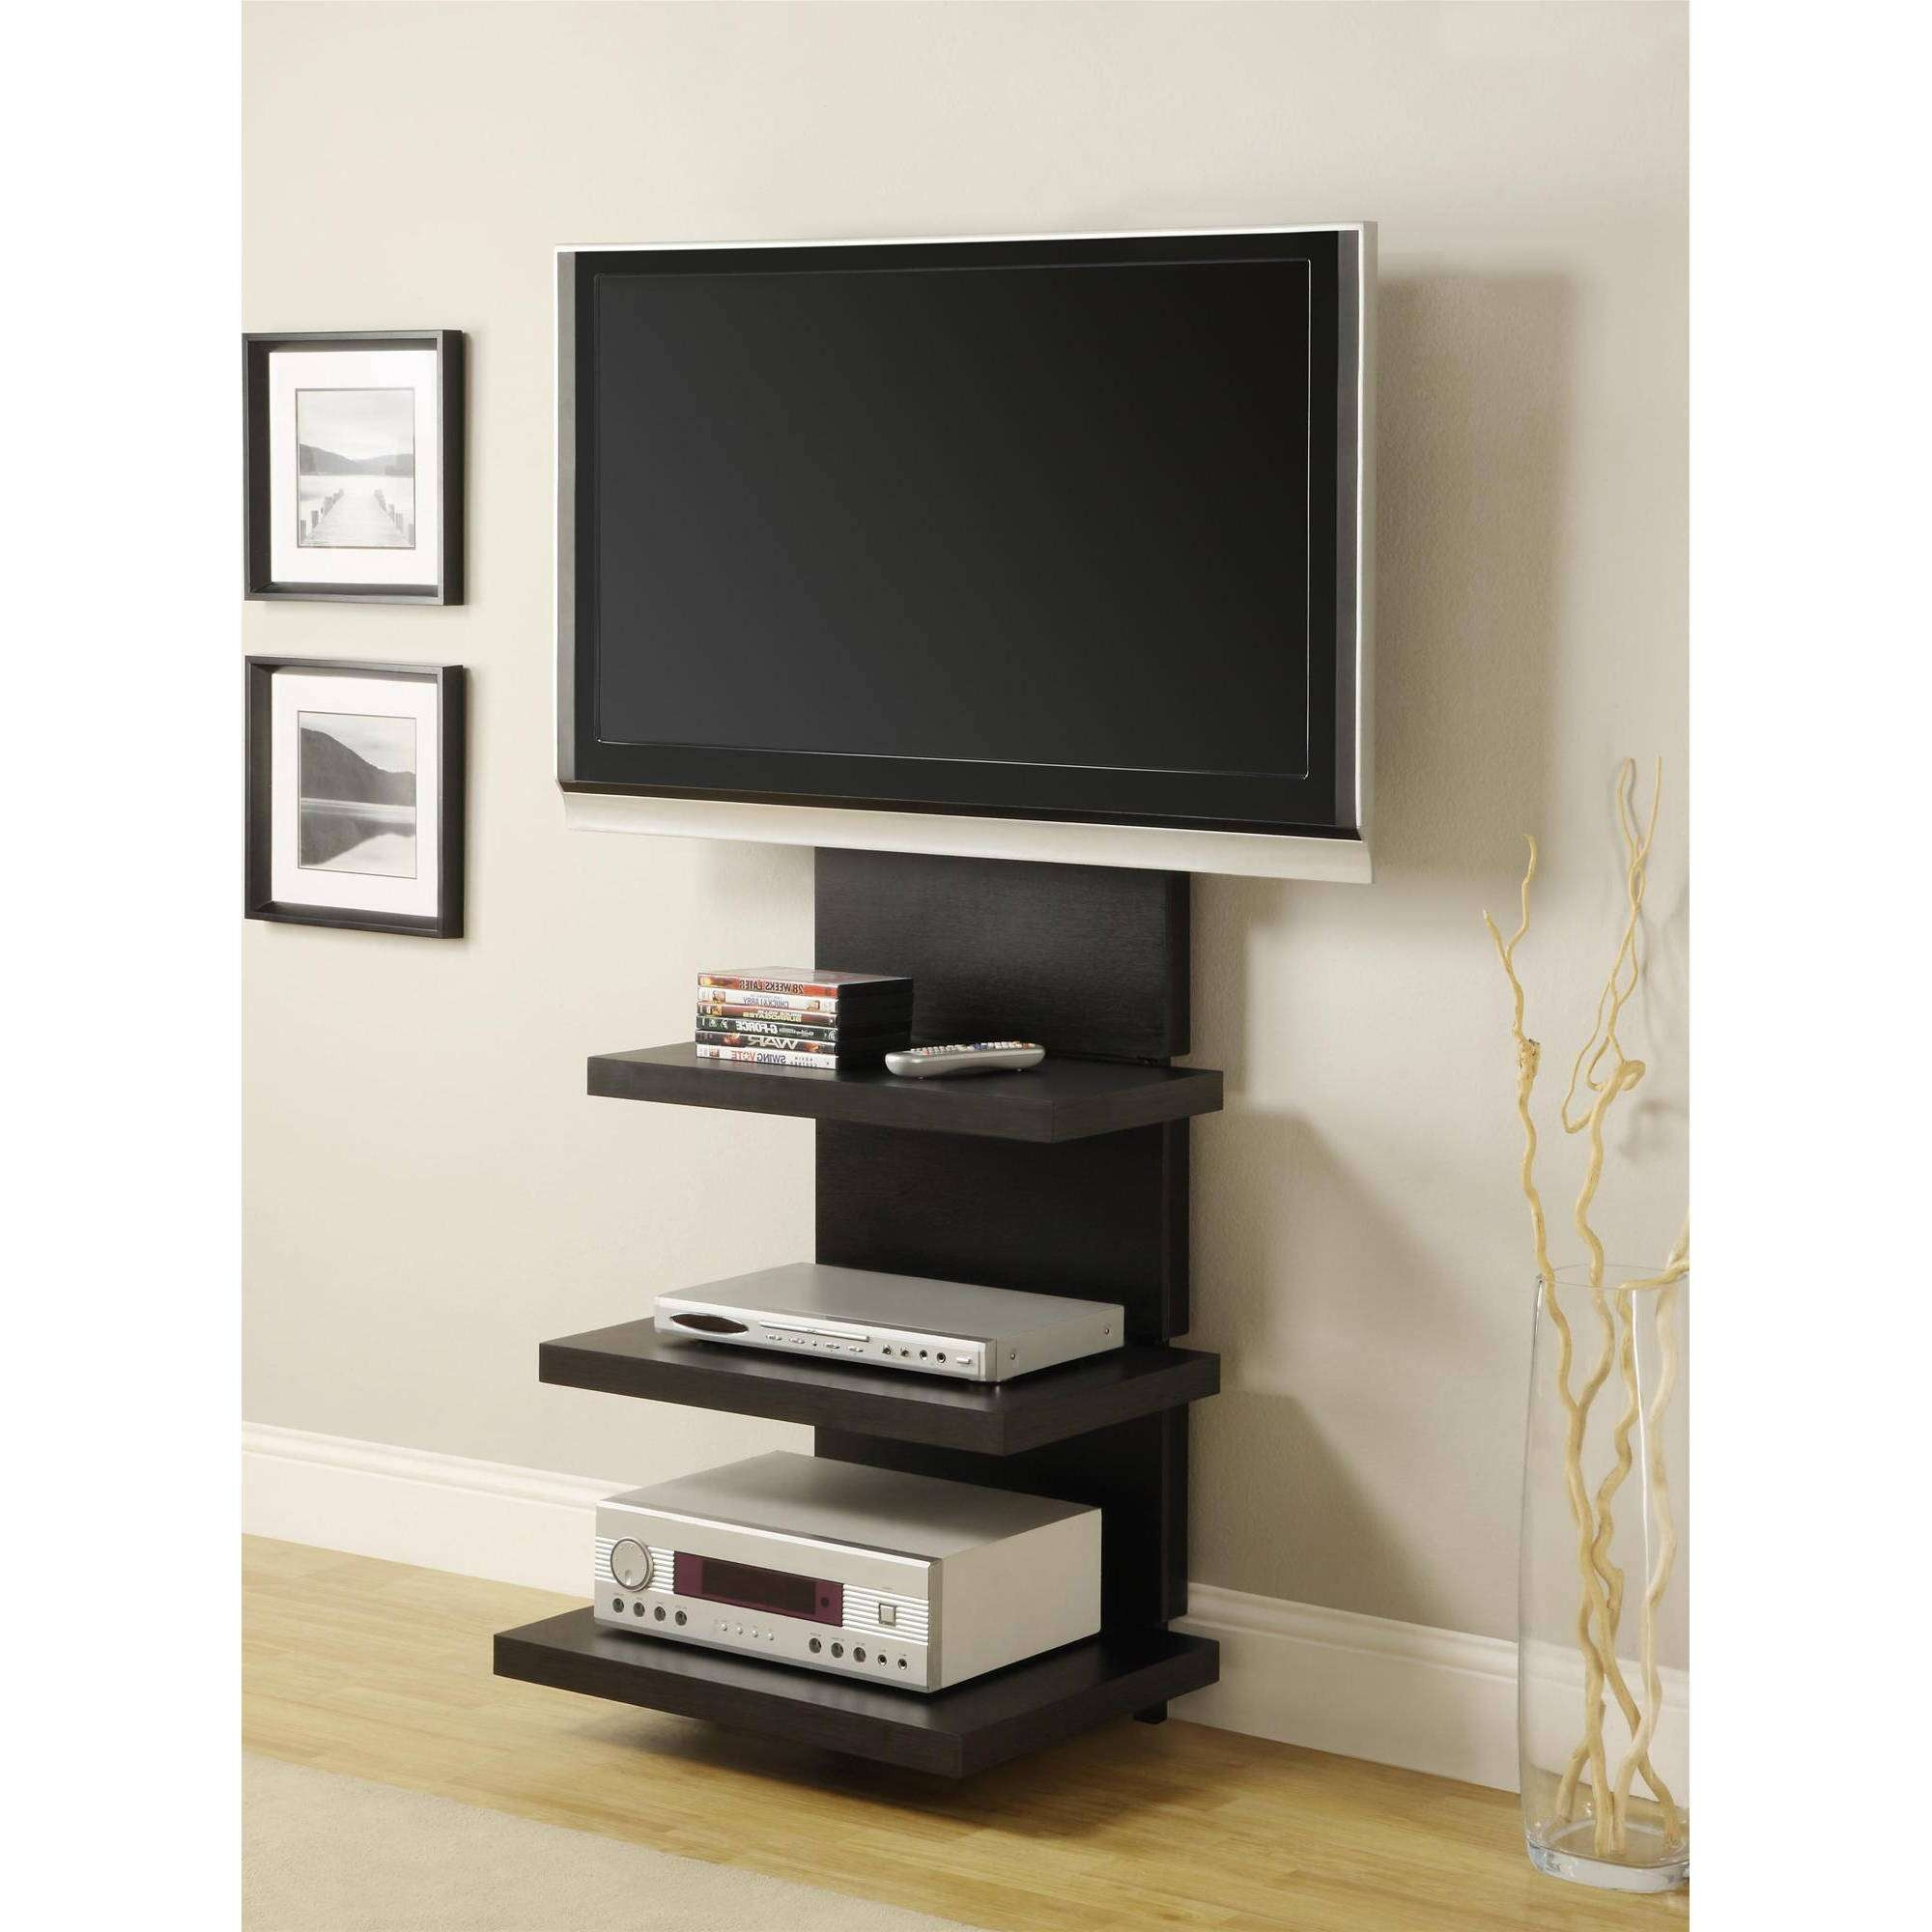 Ameriwood Home Elevation Altramount Tv Stand For Tvs Up To 60 Inside 24 Inch Wide Tv Stands (View 7 of 15)